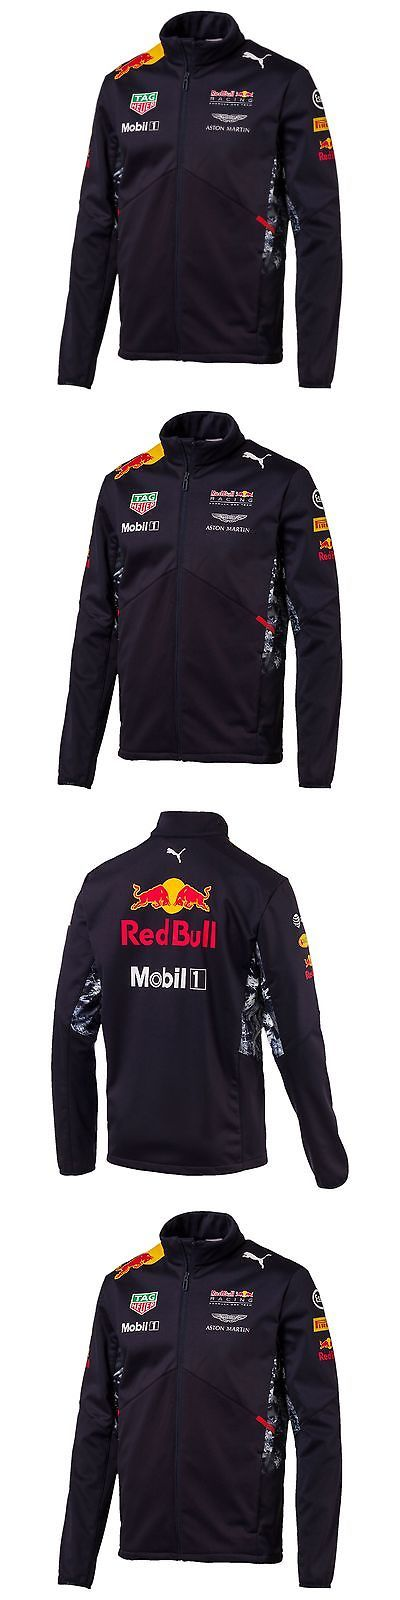 Racing-Formula 1 2876: Red Bull Racing Team Softshell Jacket -> BUY IT NOW ONLY: $180 on eBay!